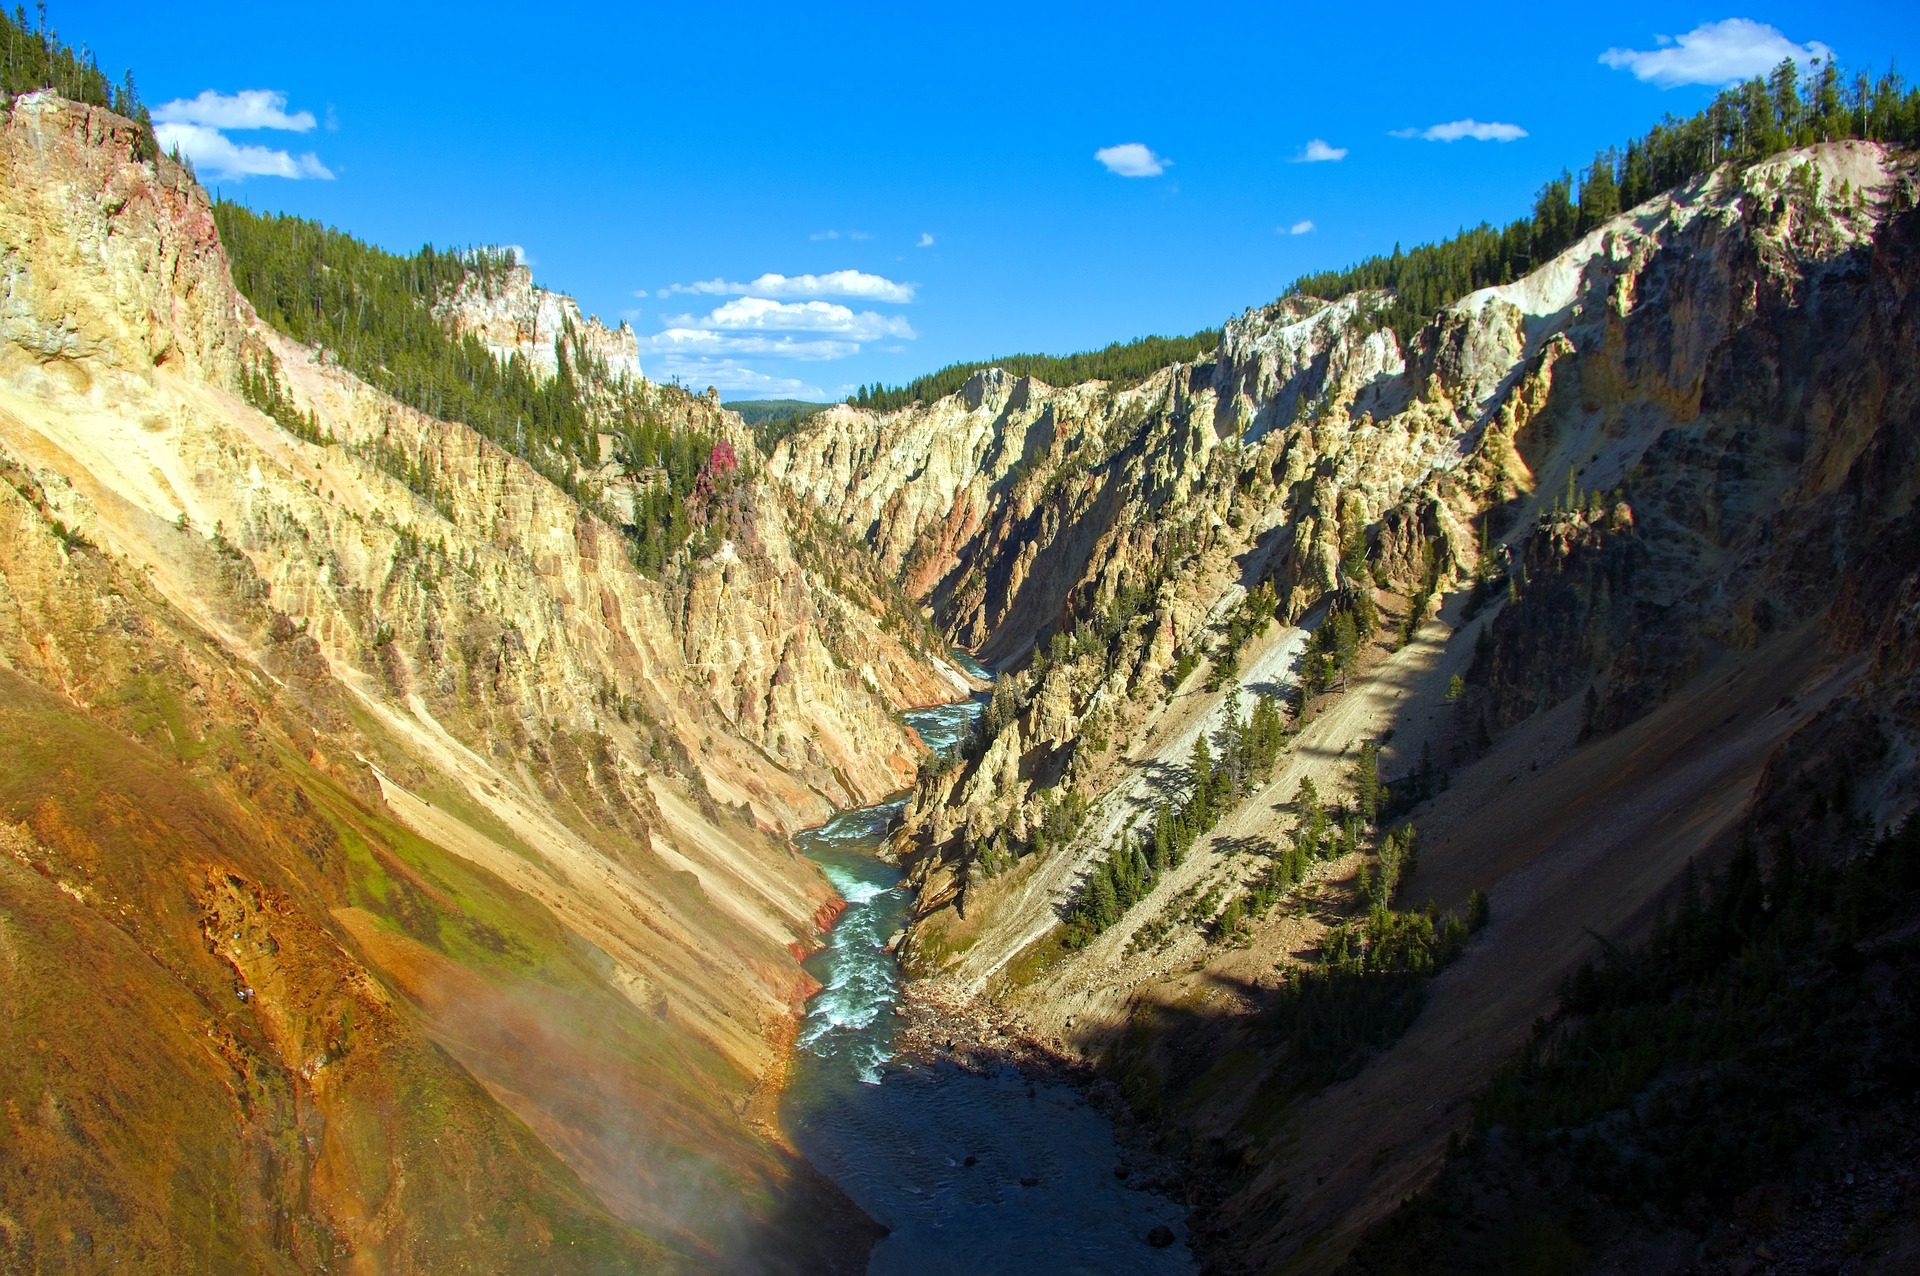 Scenic Parks Explorer | Grand Canyon of the Yellowstone, Yellowstone National Park, Wyoming, USA